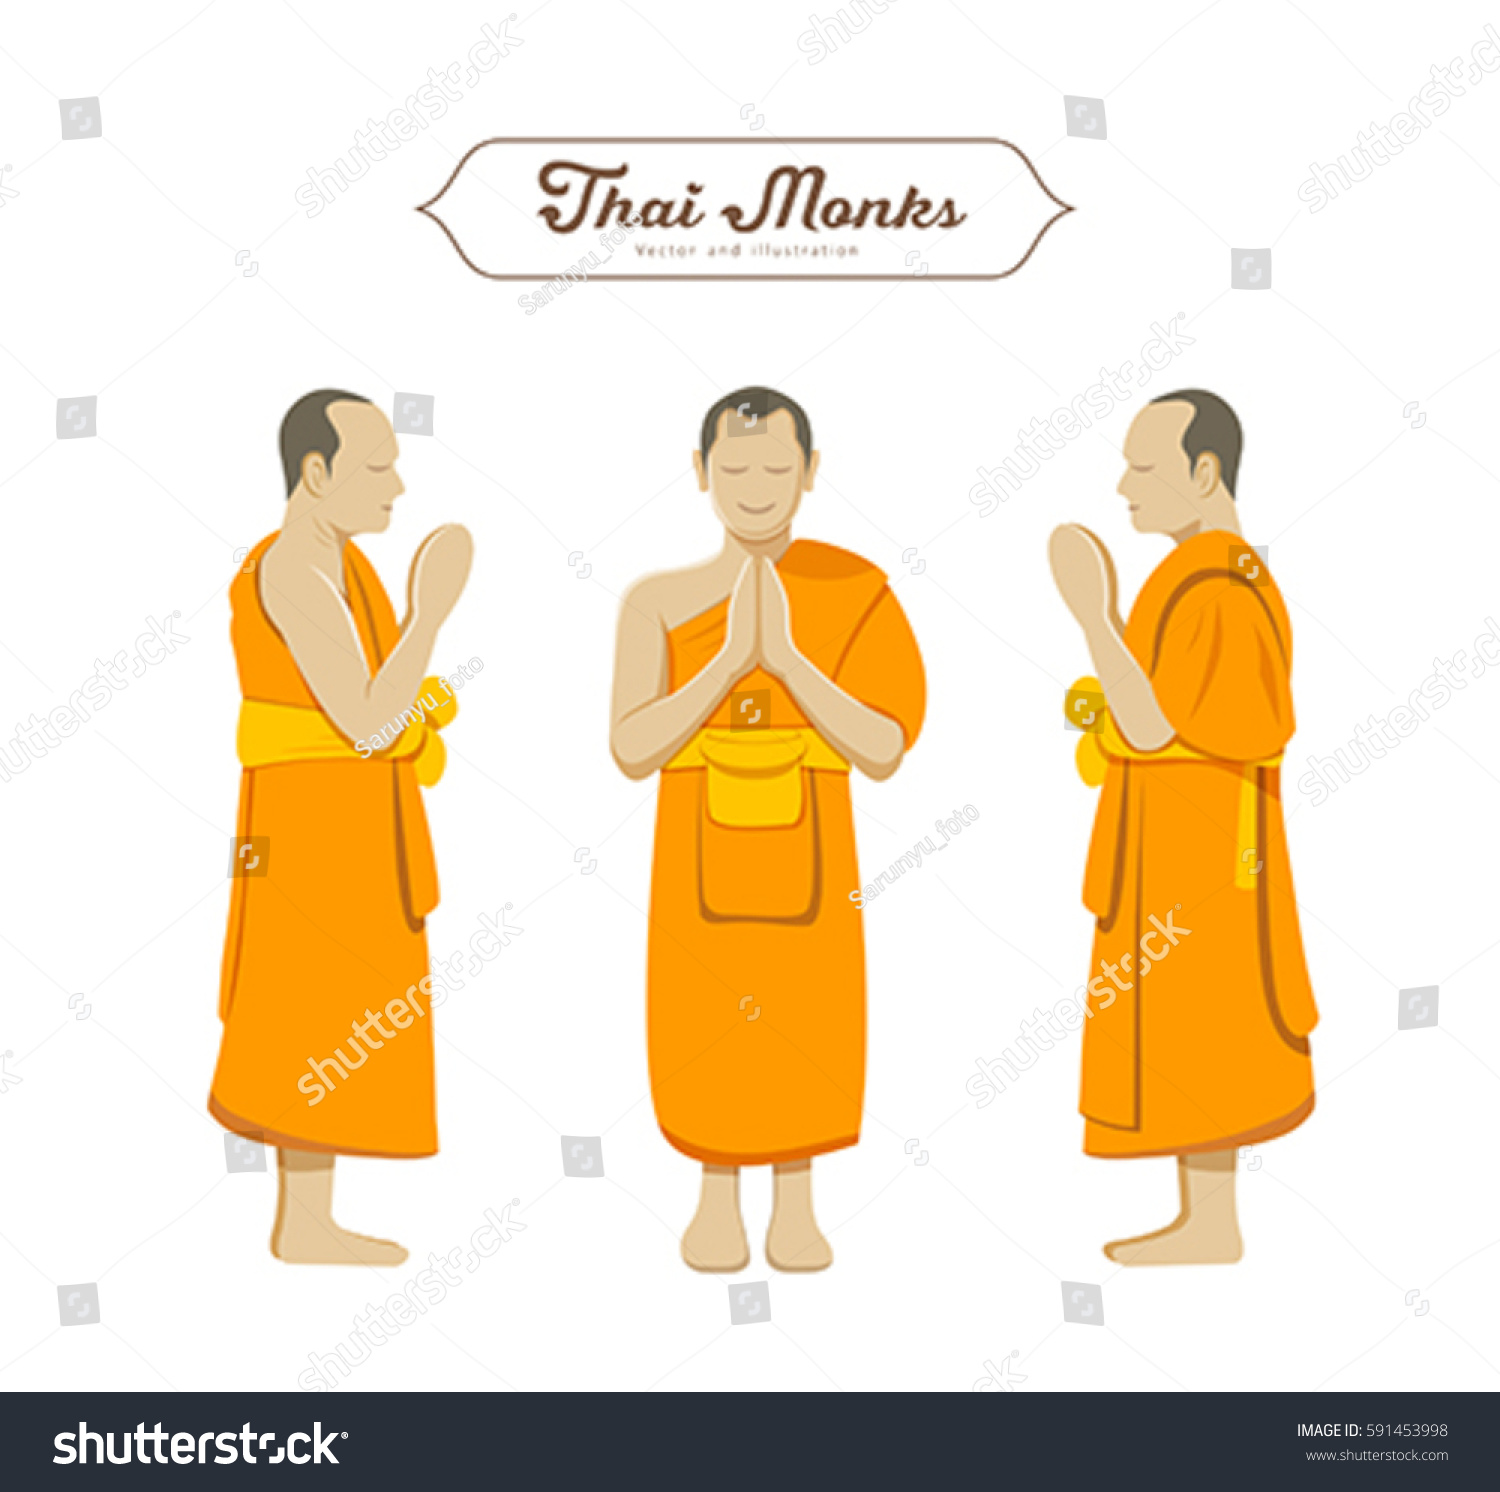 Thai Monks Greetings Collections Vector Illustration Stock Vector